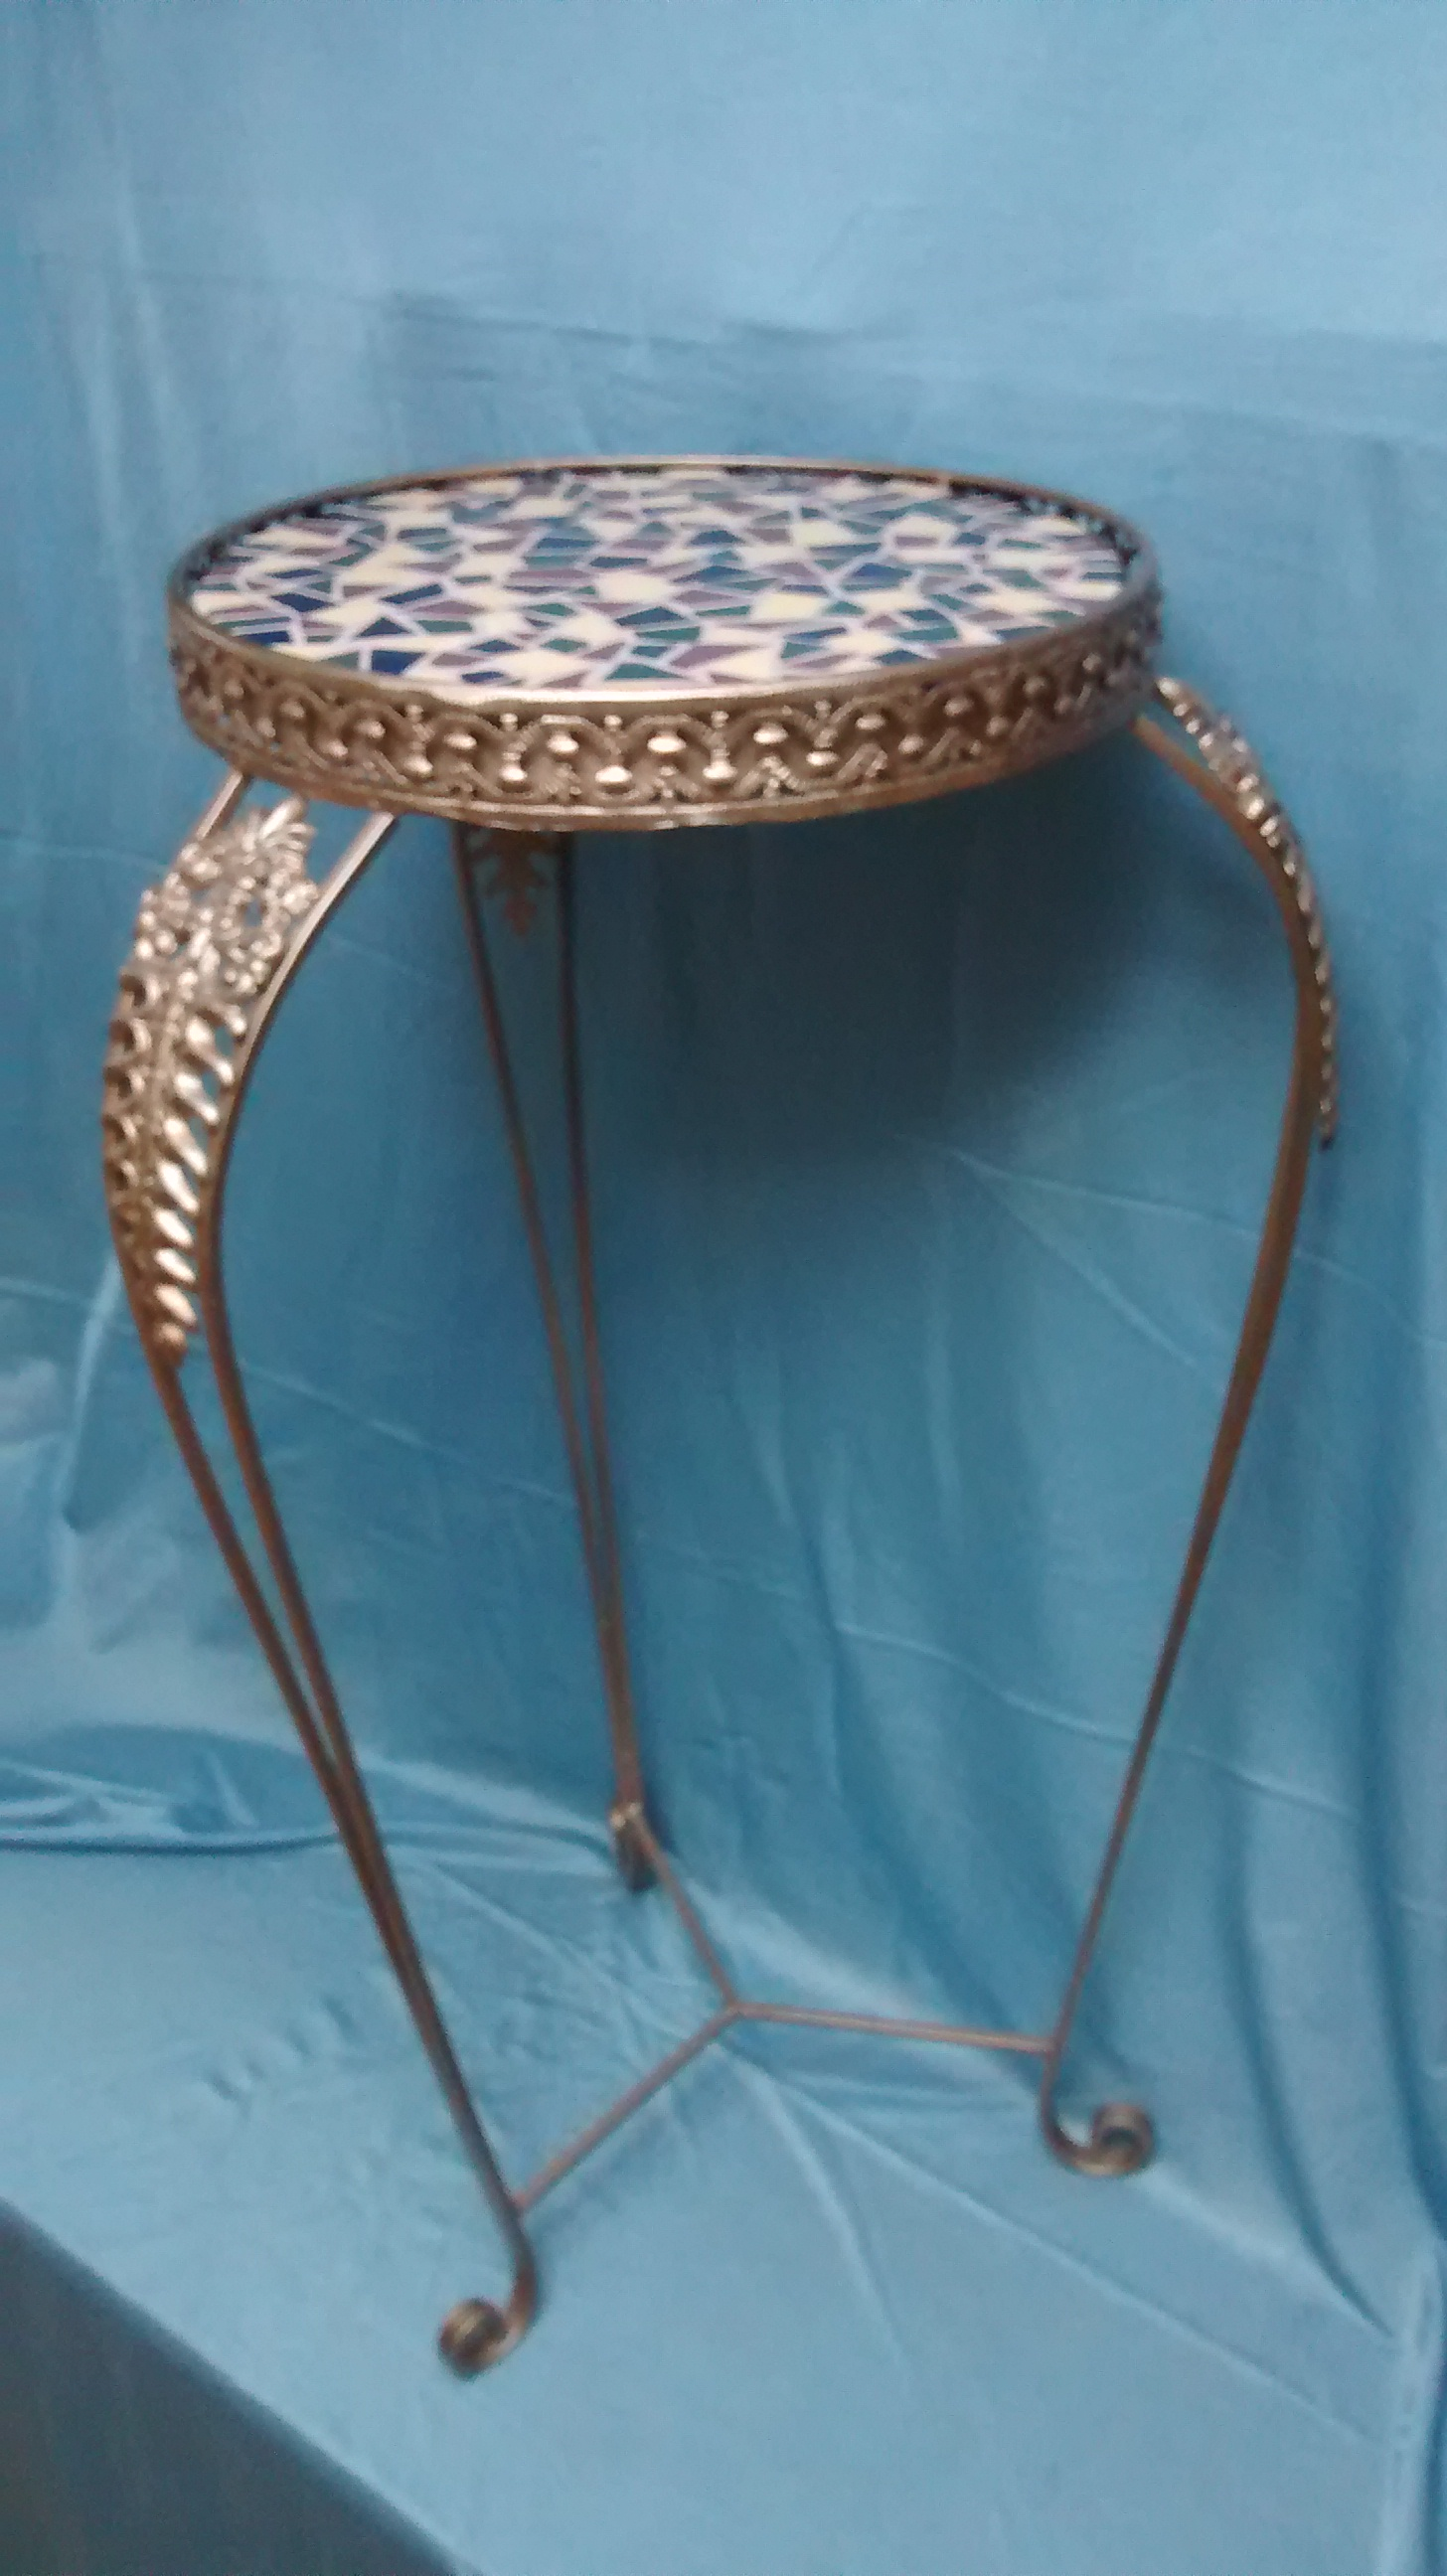 Metal Plant Stand with Colorful Mosaic Top